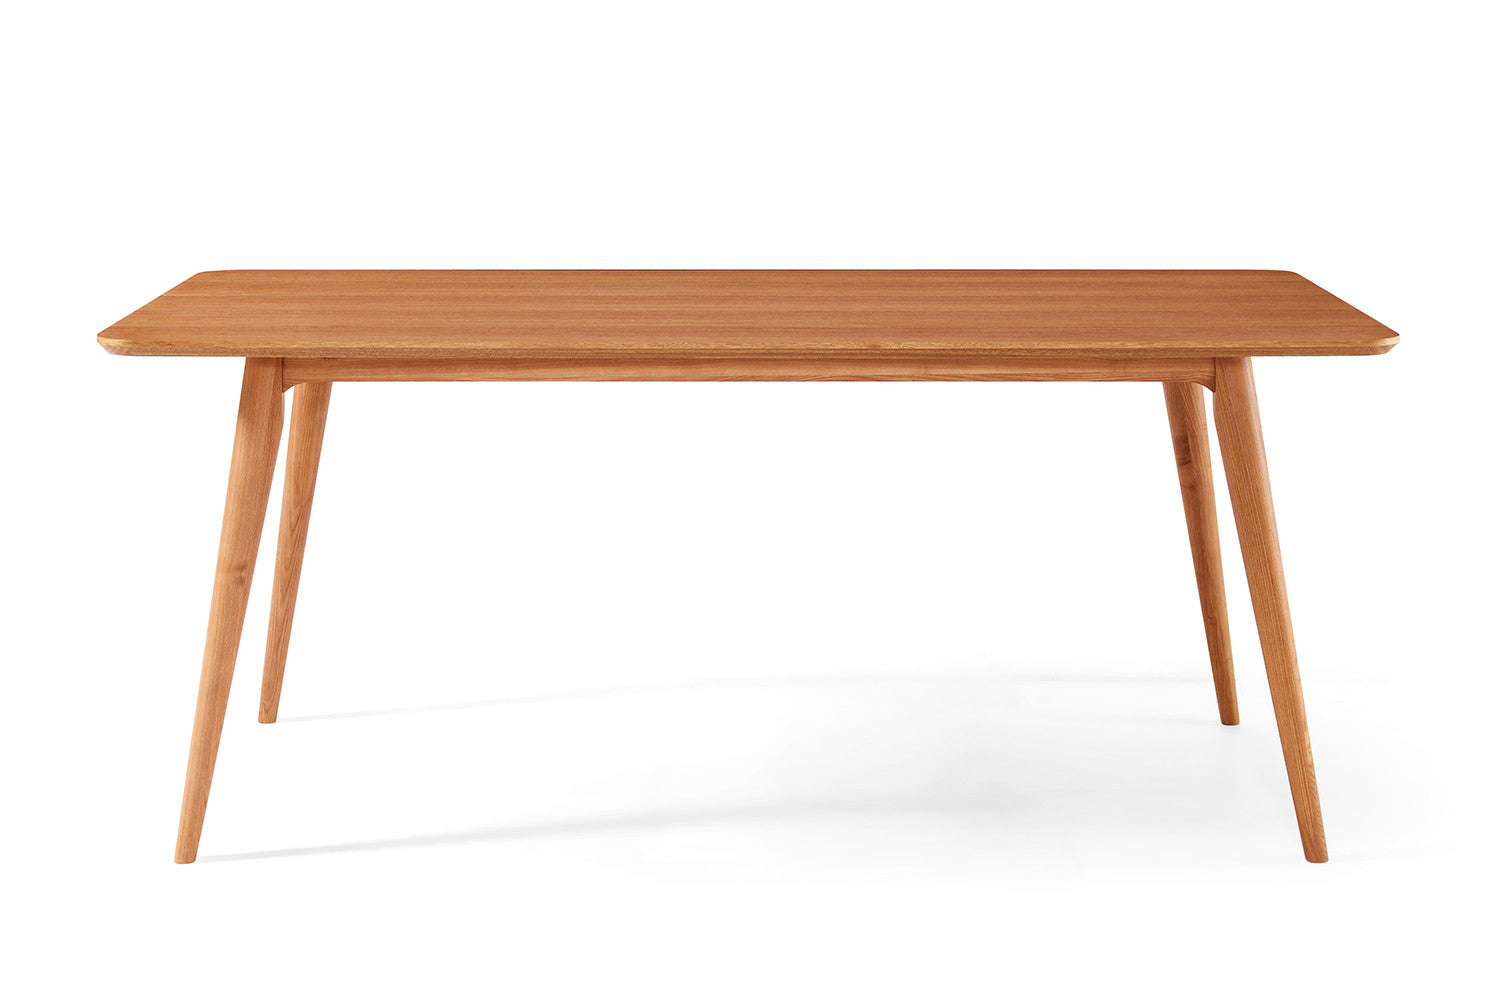 Table de salle manger design en bois julia dewarens for Table salle a manger bois design